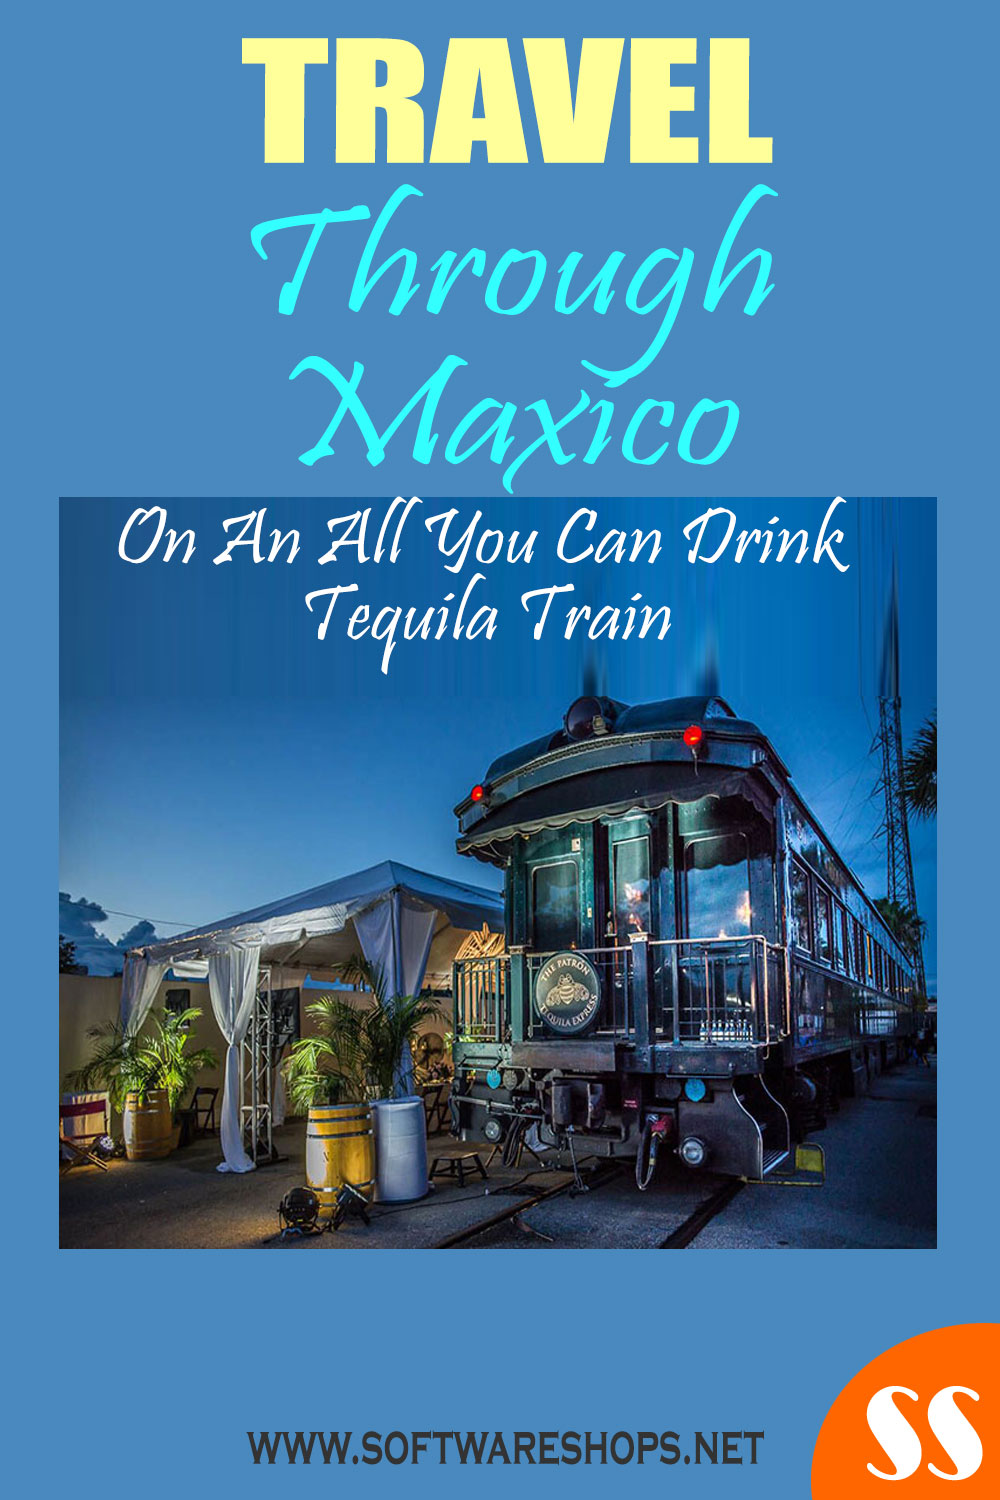 Travel through Mexico on an all-you-can-drink tequila train